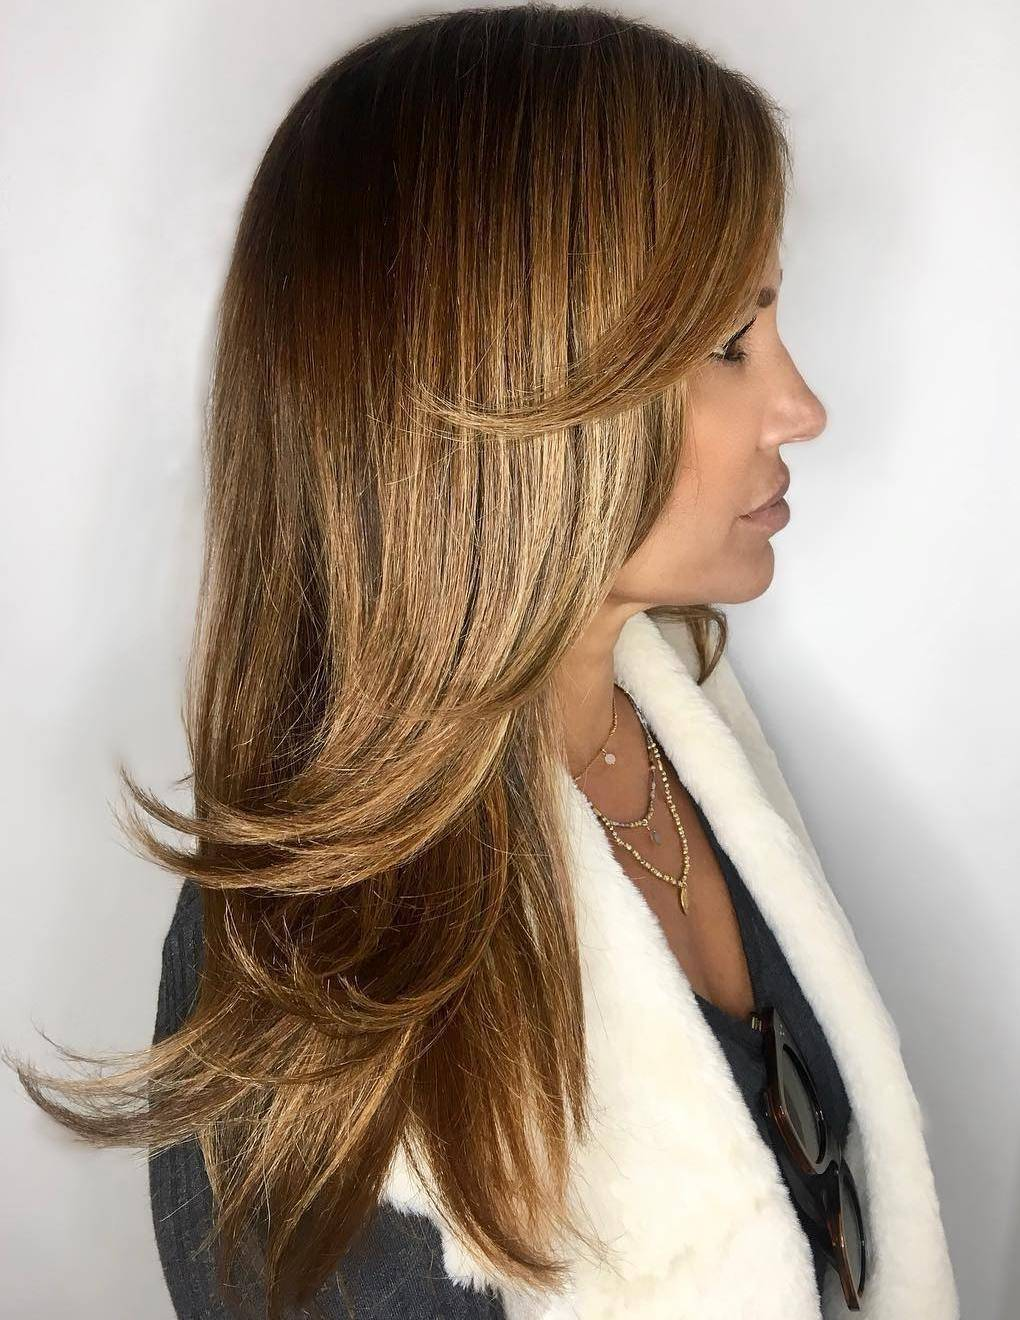 Woman with brown swoopy layered hair